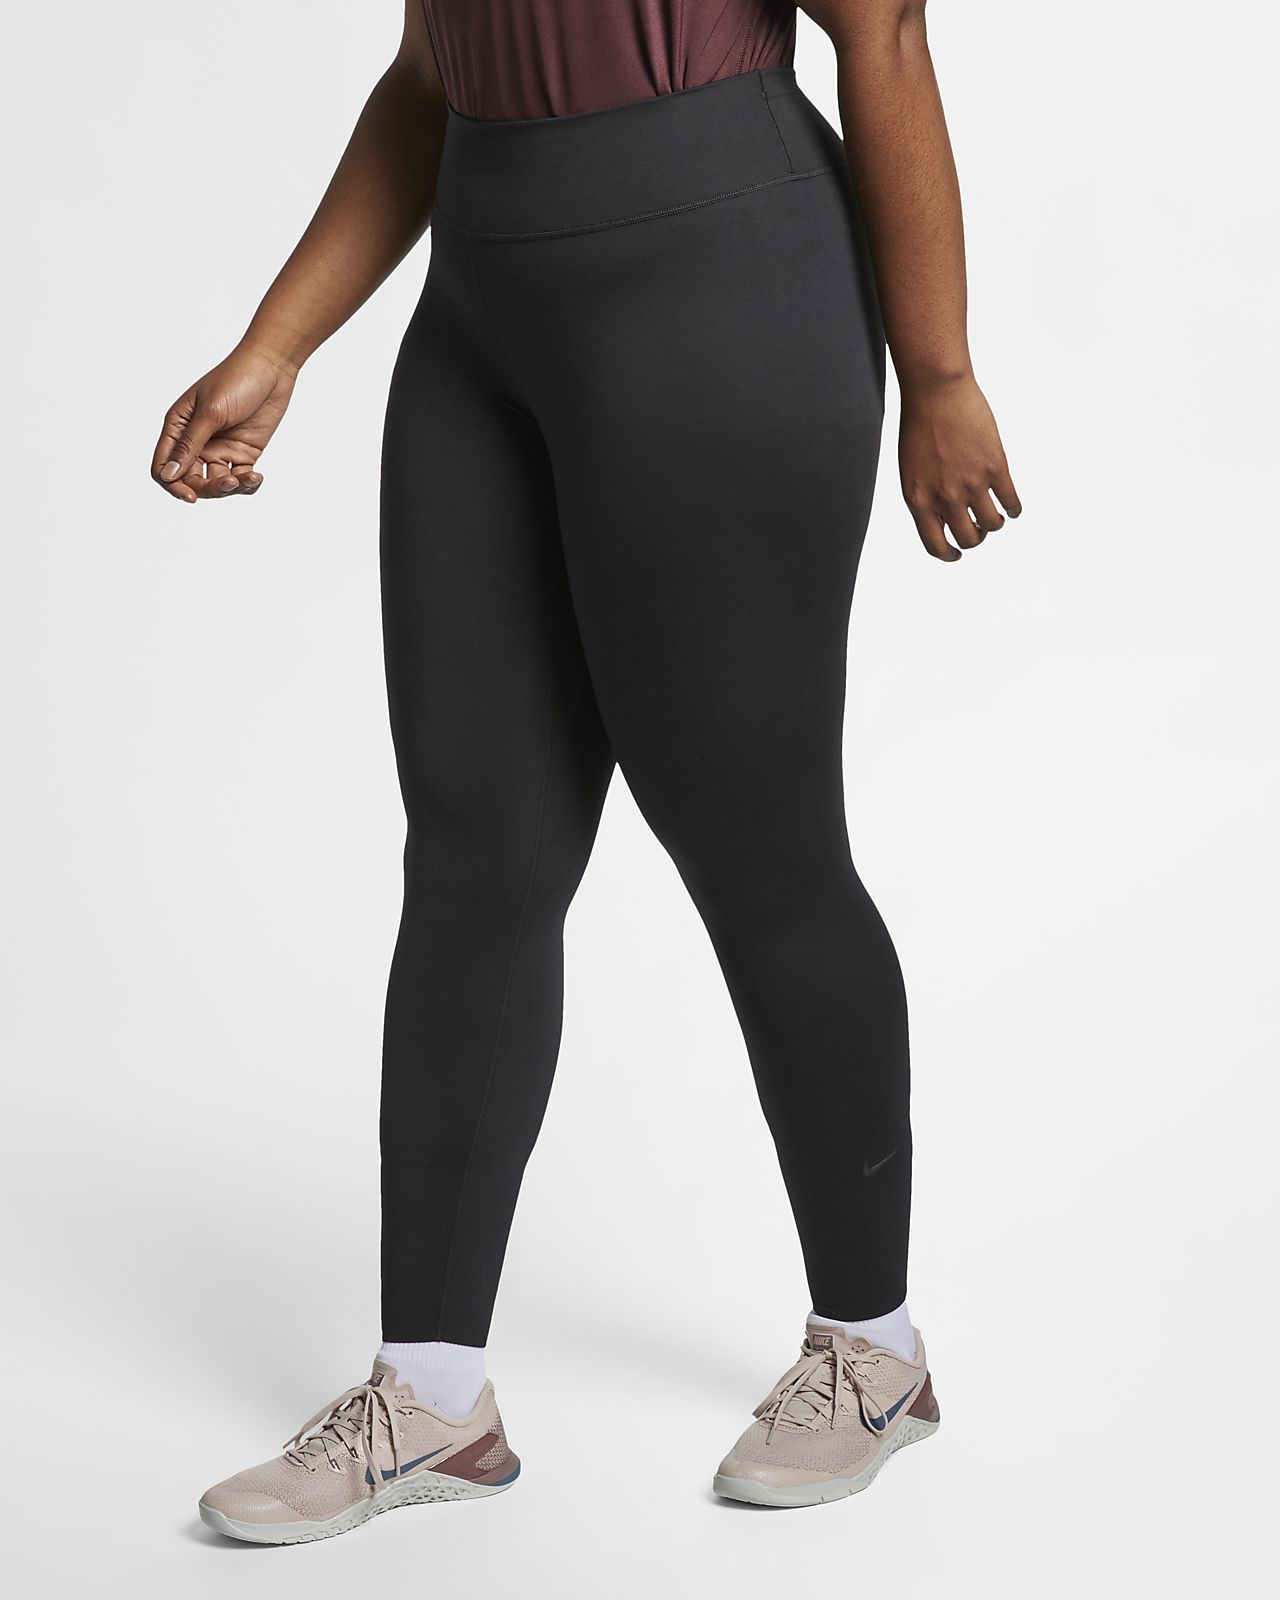 Tights Nike One Luxe para mulher (tamanhos grandes)